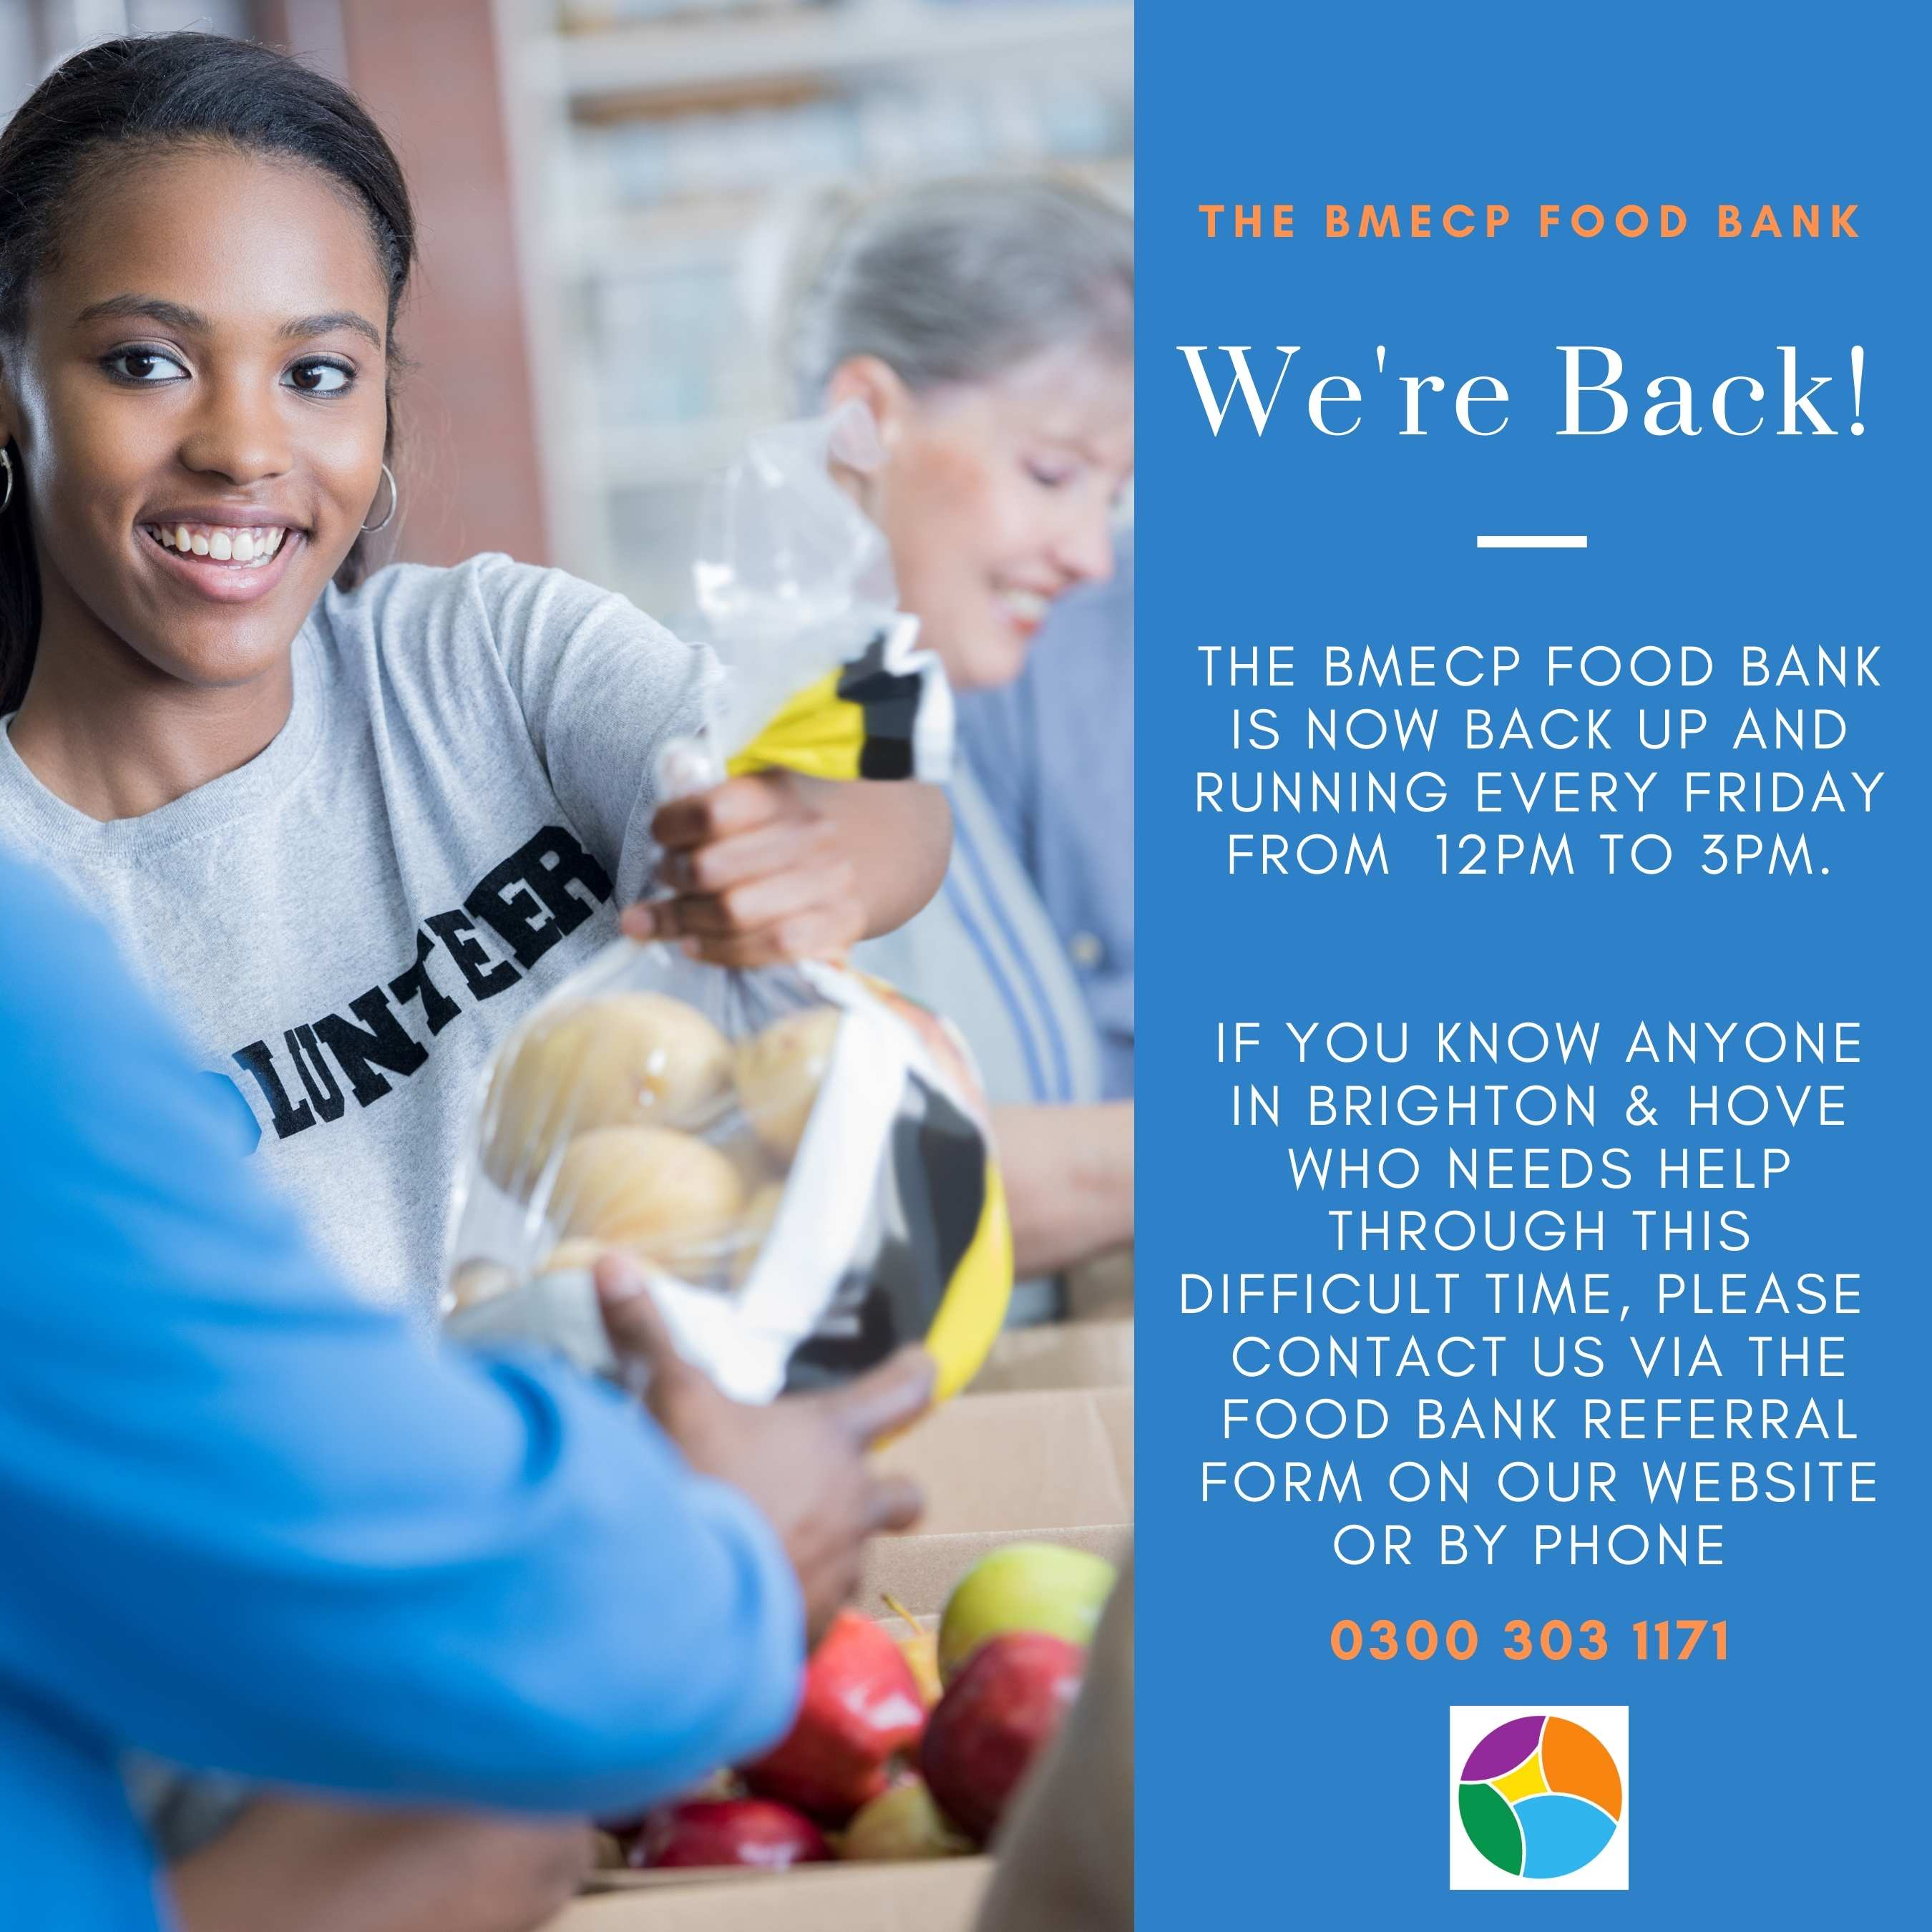 The BMECP Food Bank